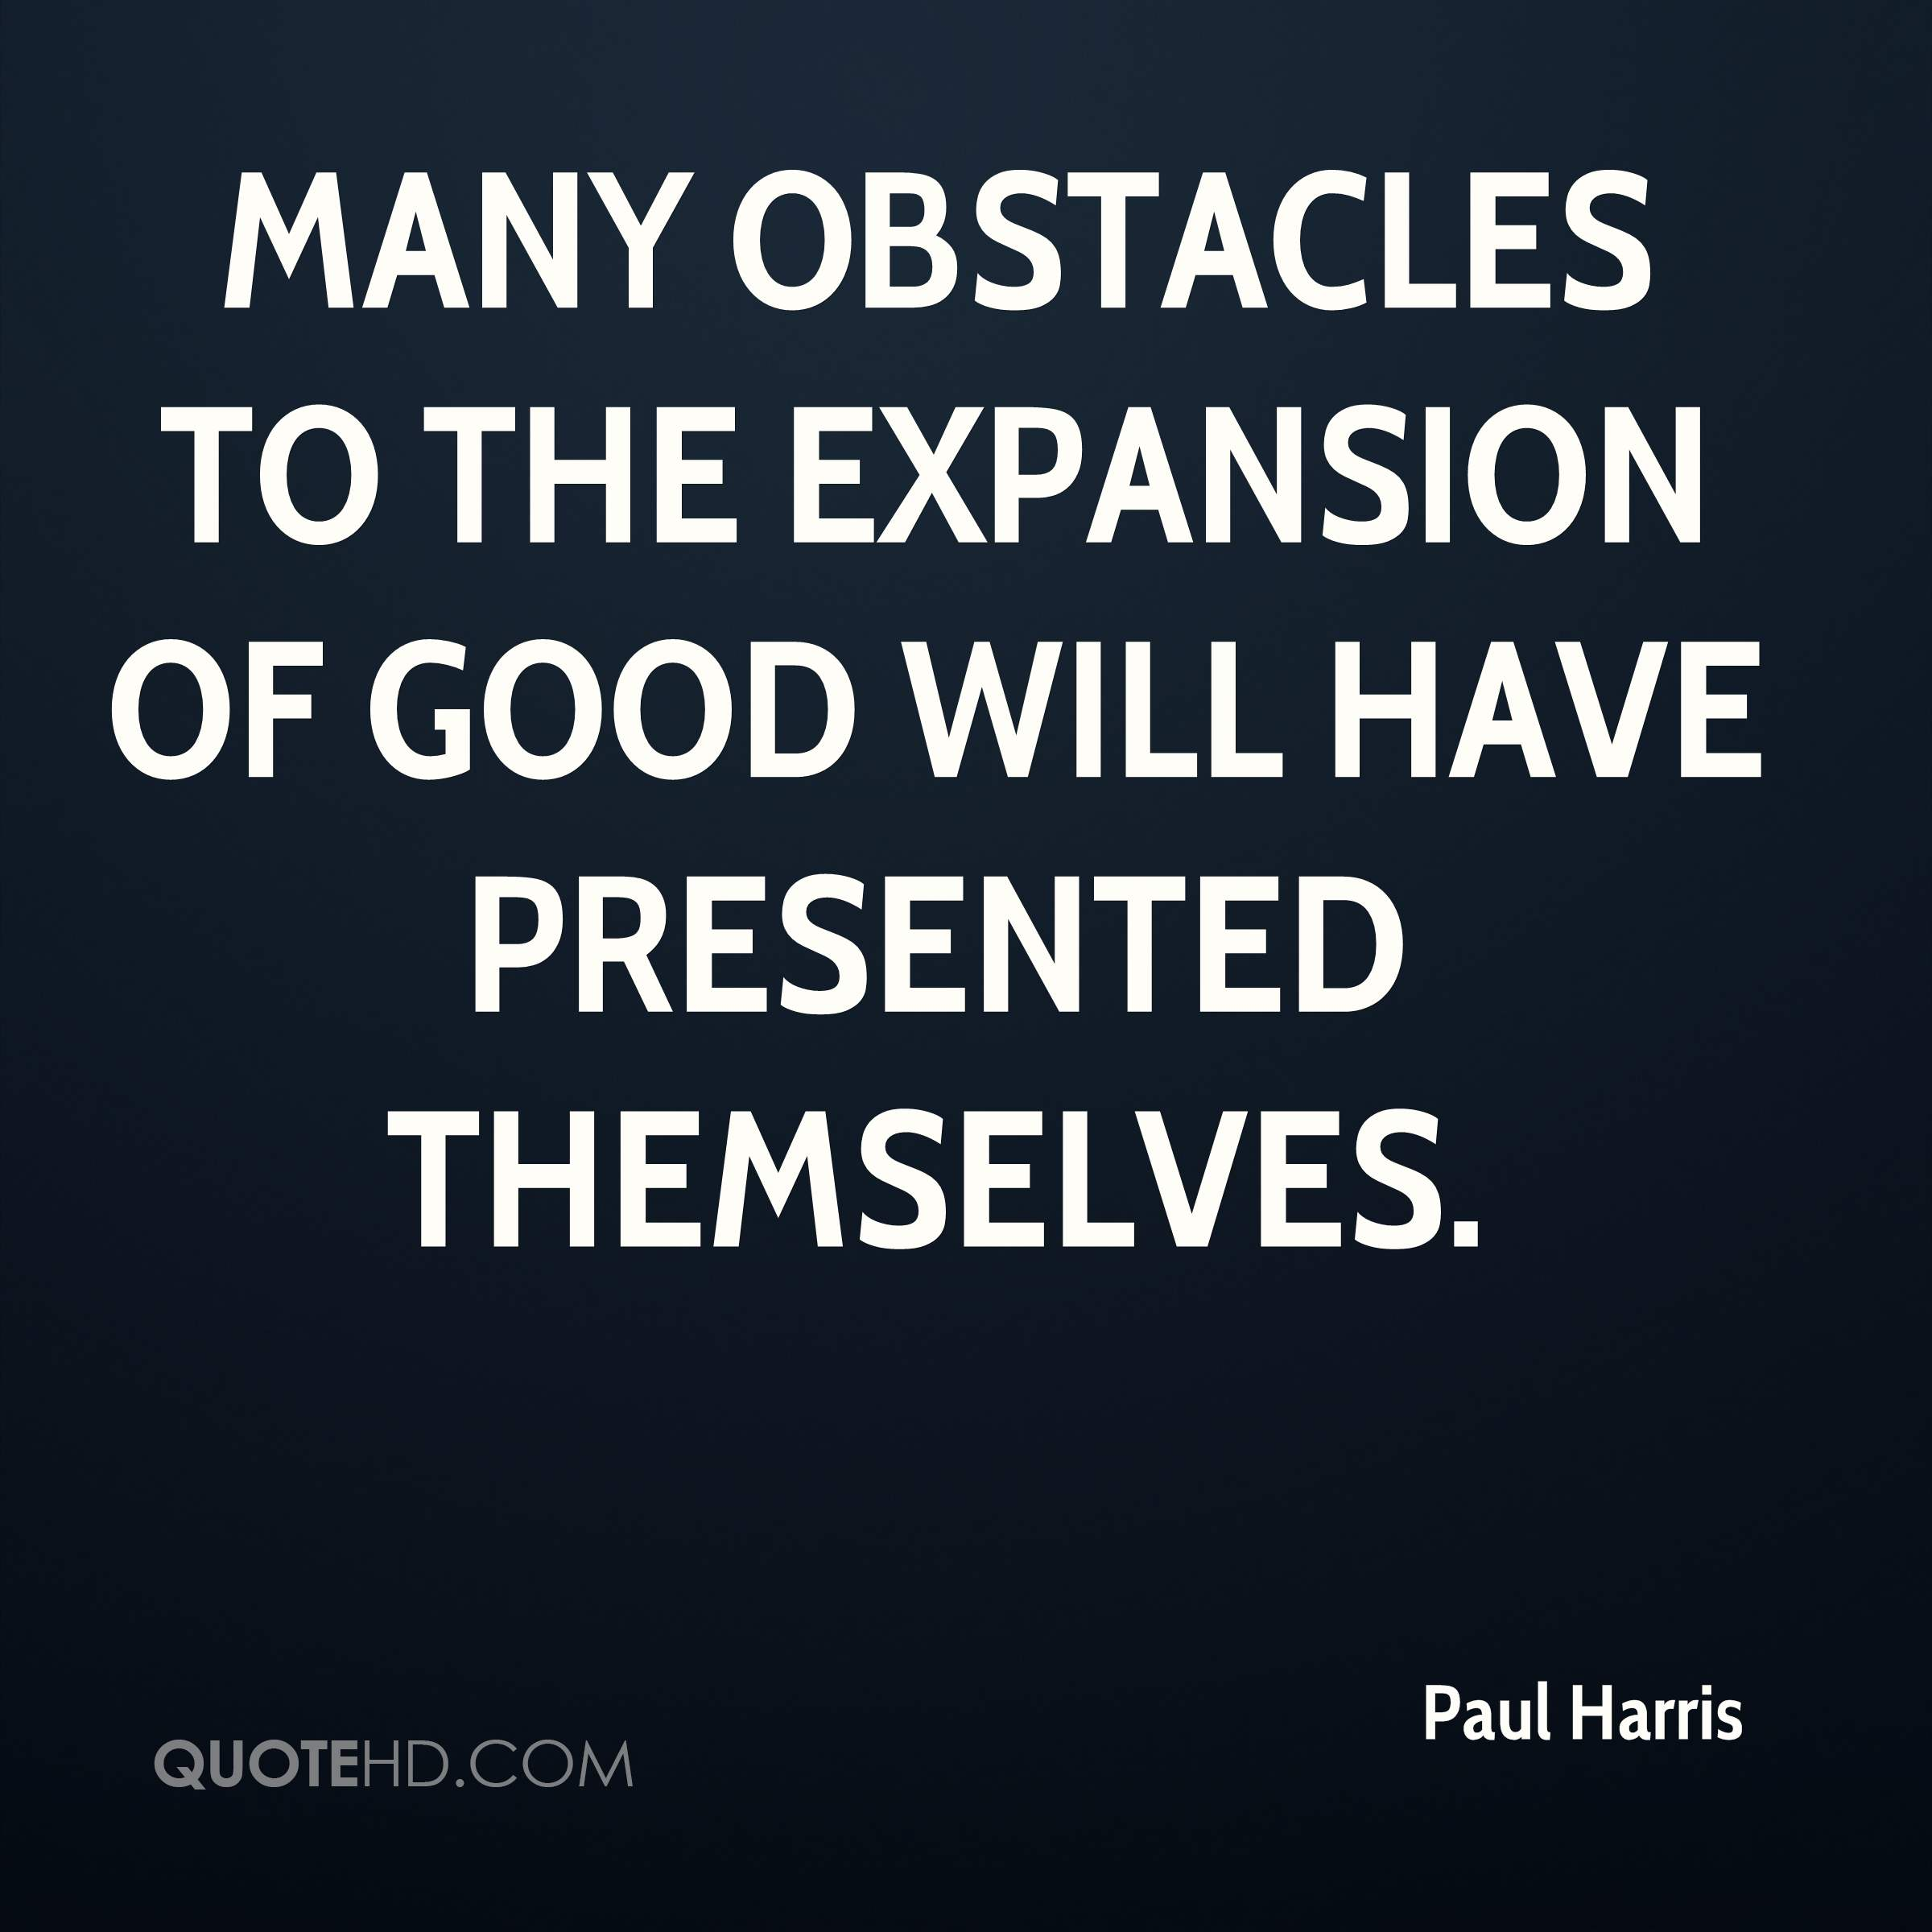 Many obstacles to the expansion of good will have presented themselves.